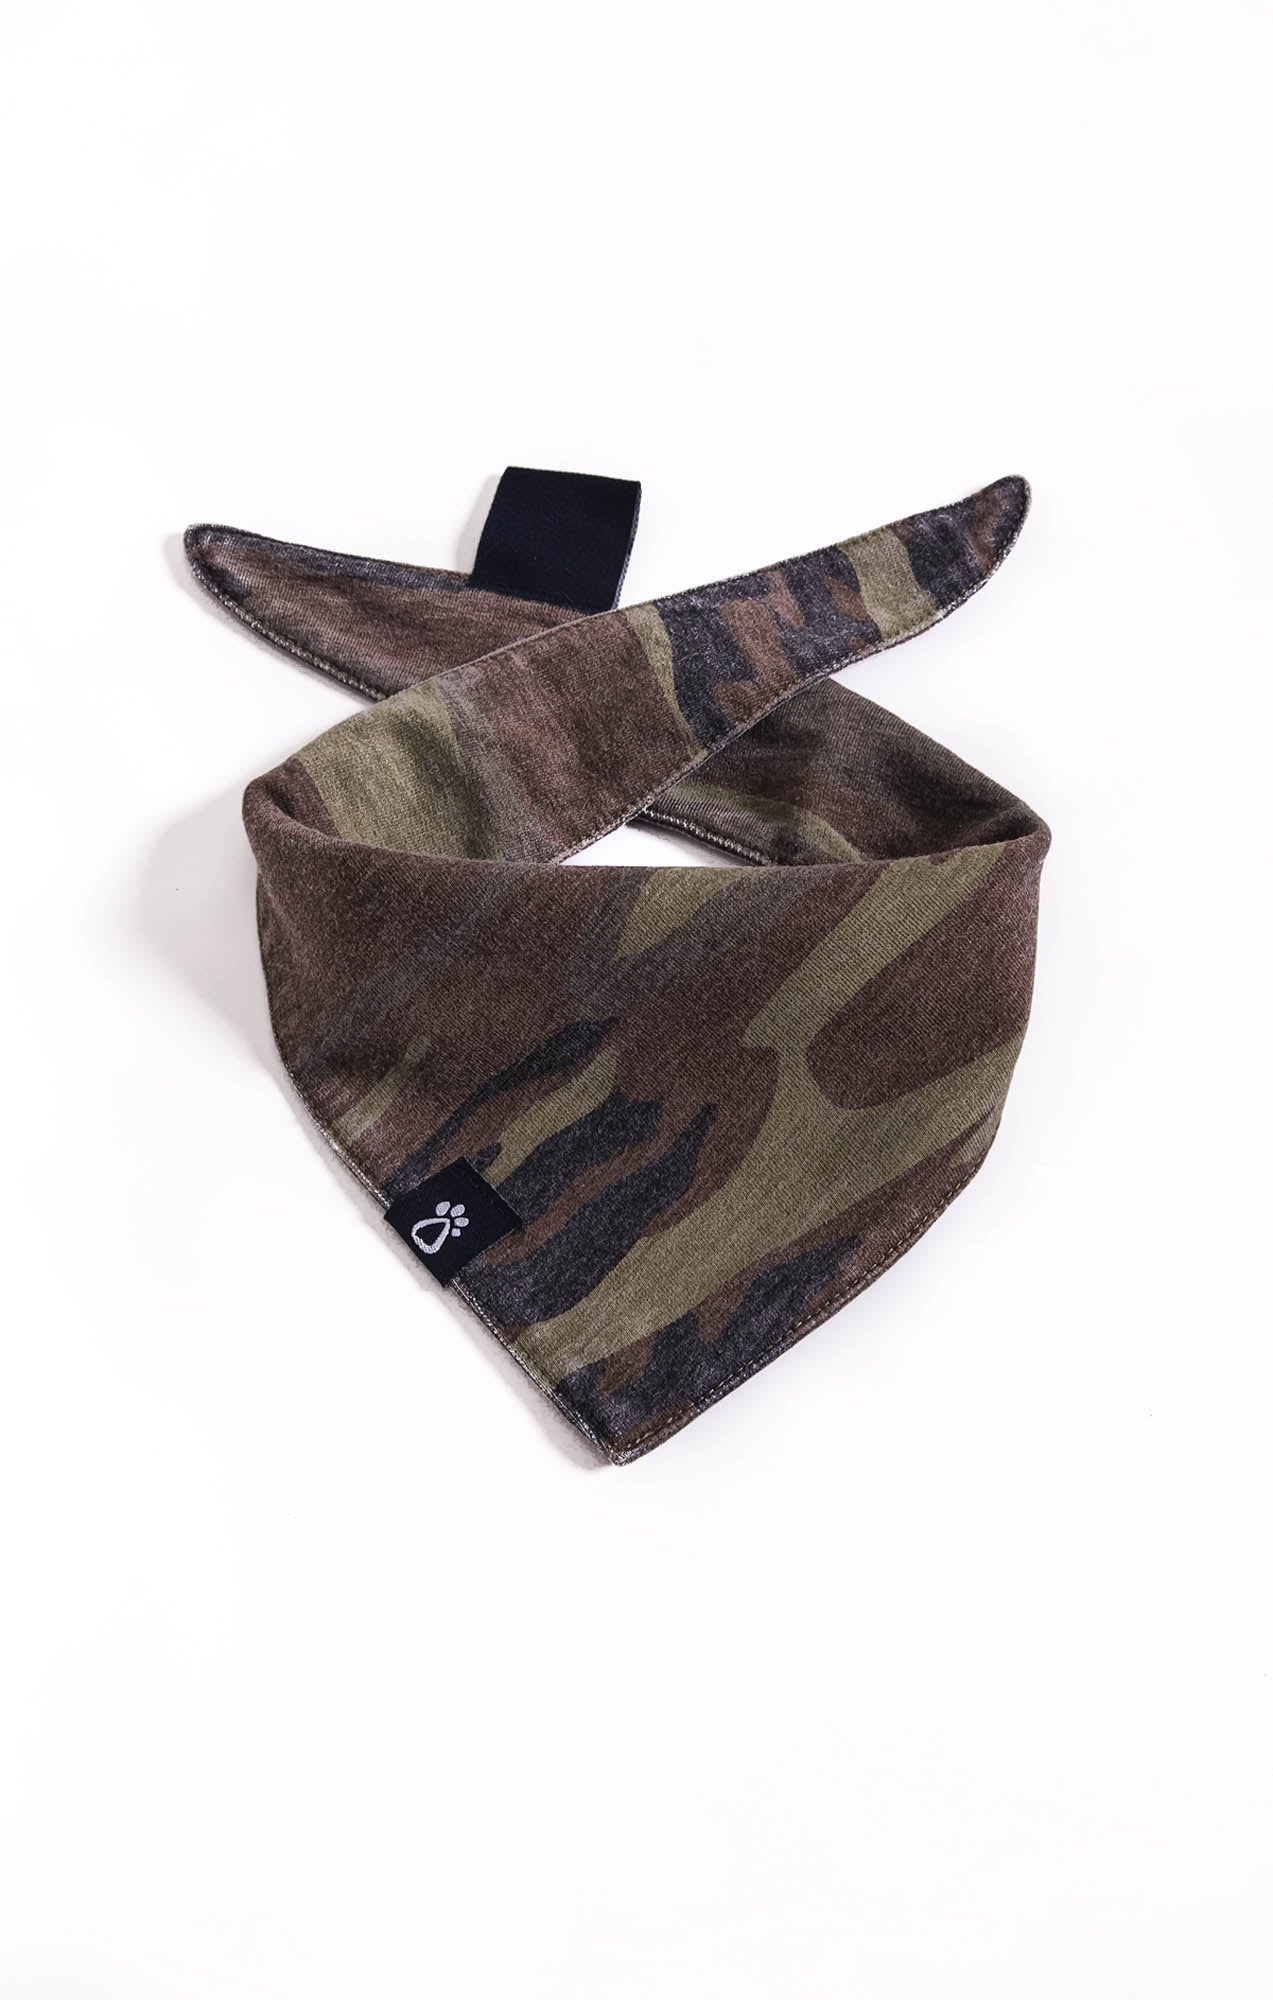 Bandana The Camo Bandana by ZOO SUPPLY Camo Green